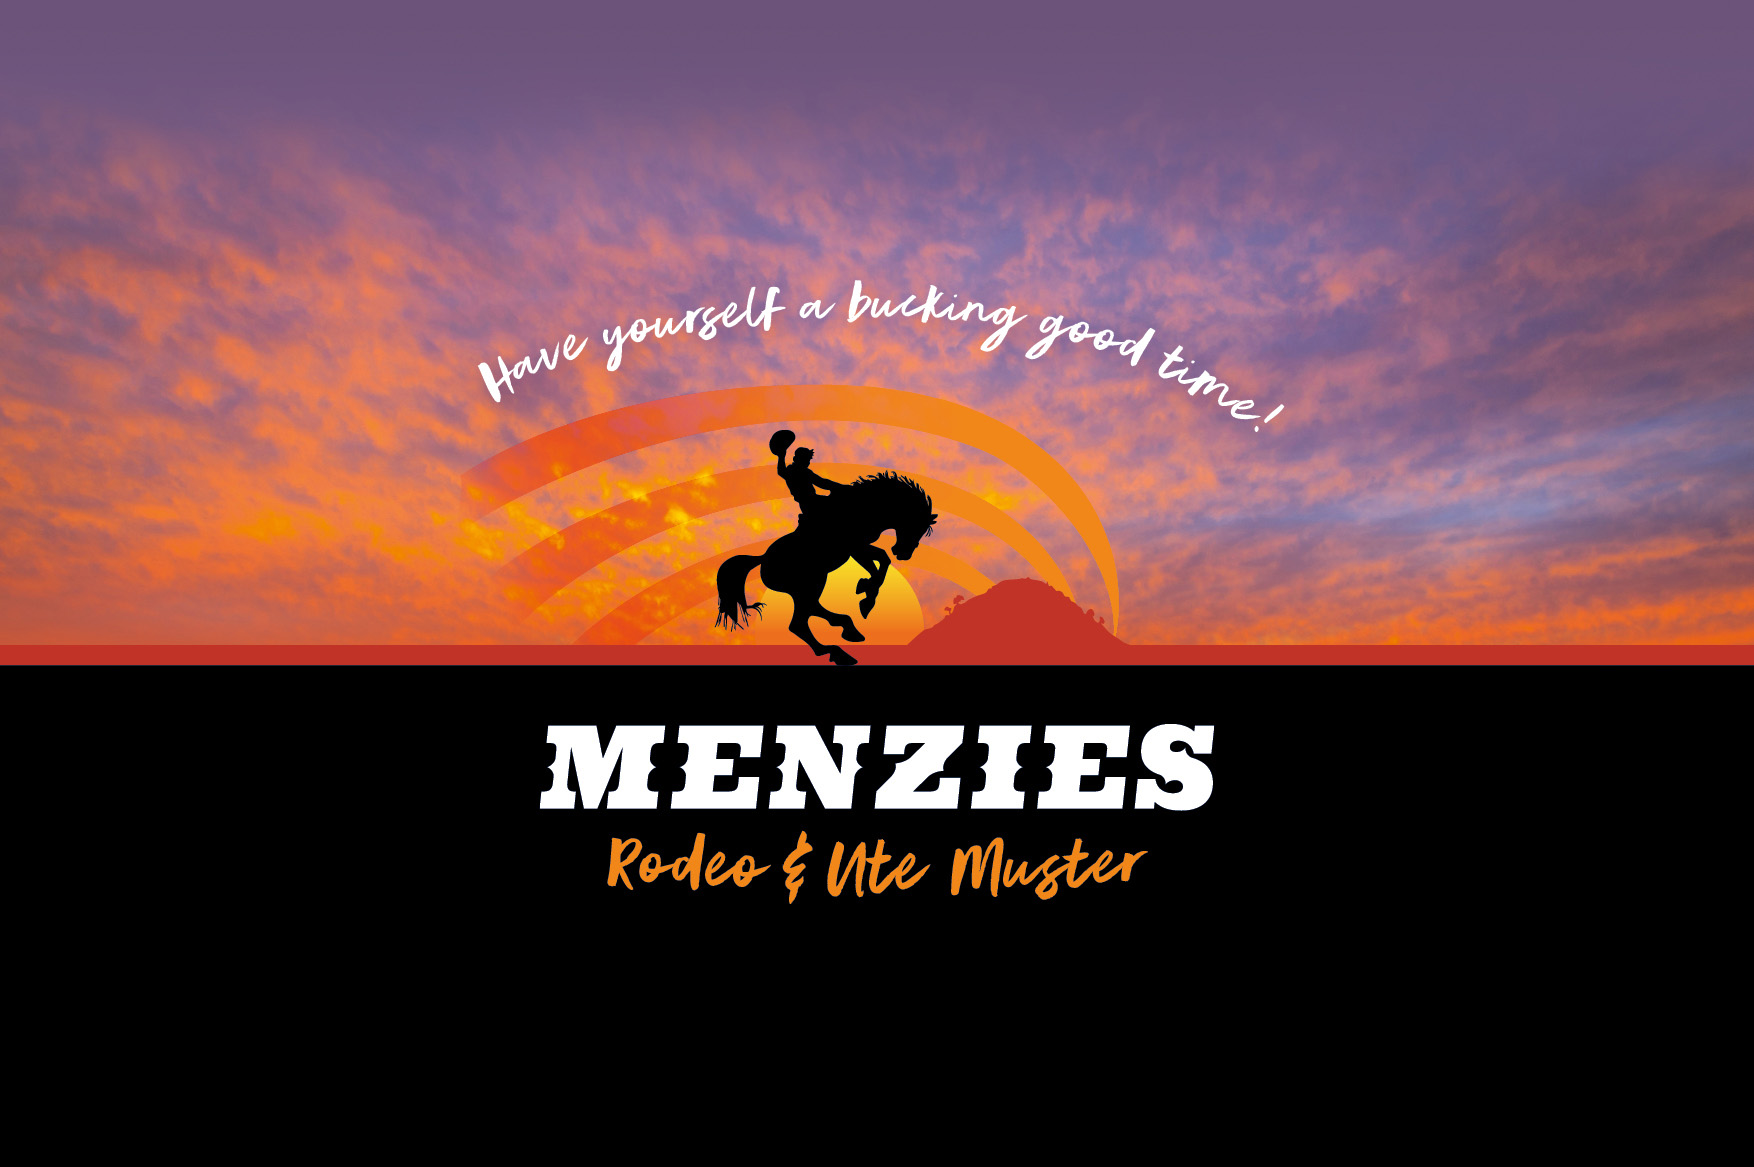 menzies-cover-page.jpg